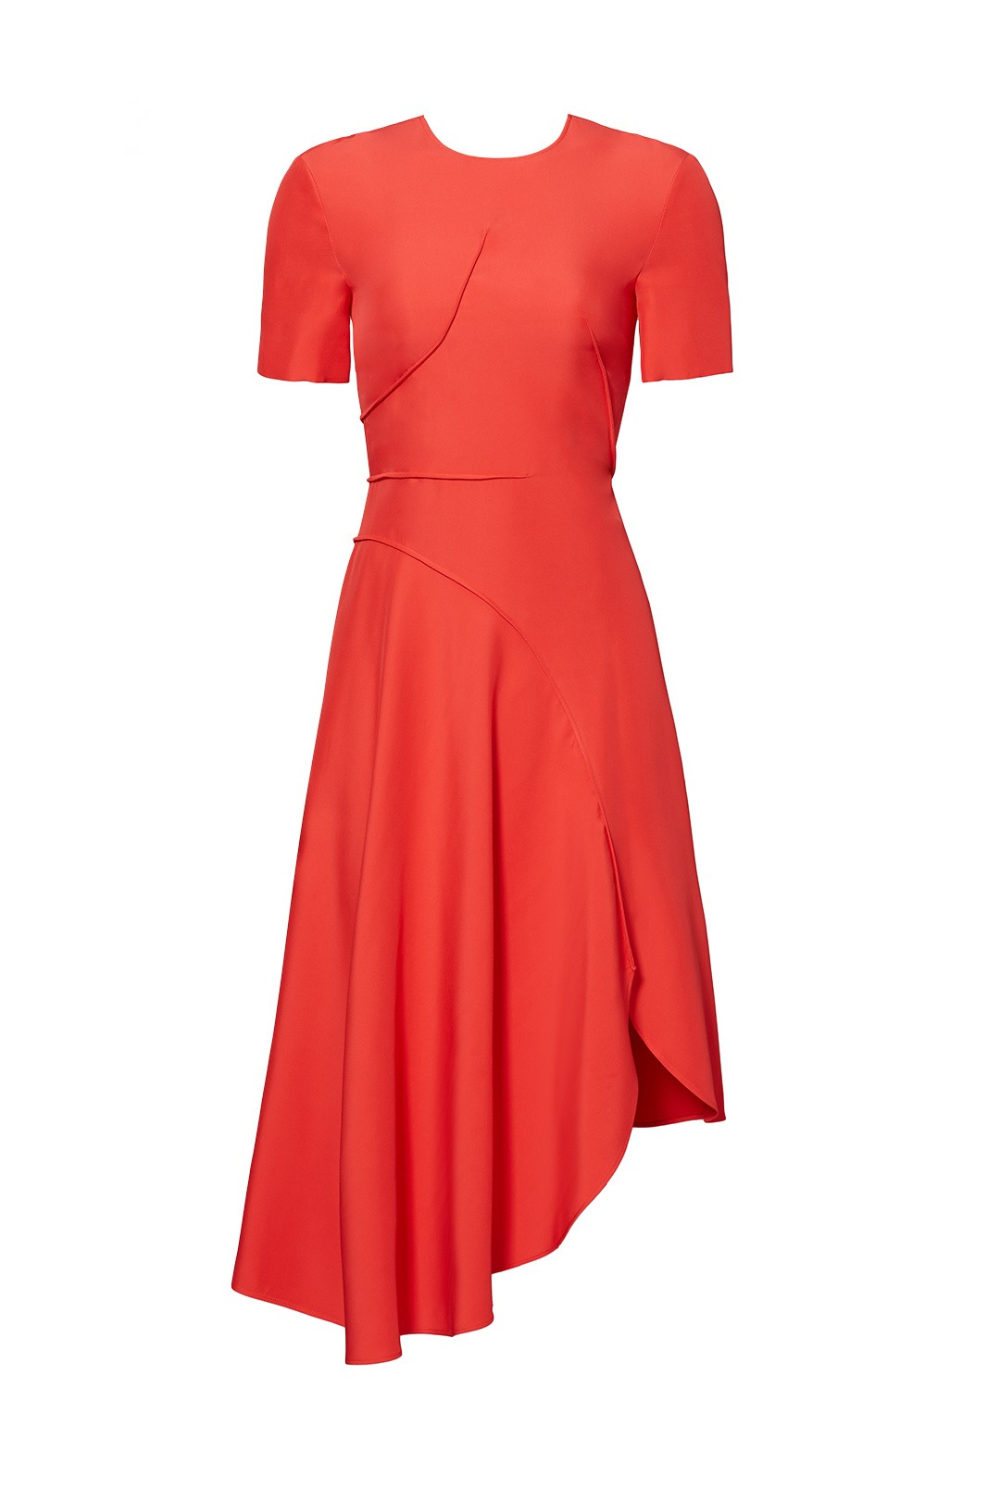 Red Asymmetrical Dress By Cedric Charlier For 89 Rent The Runway Red Asymmetrical Dress Dresses Asymmetrical Dress